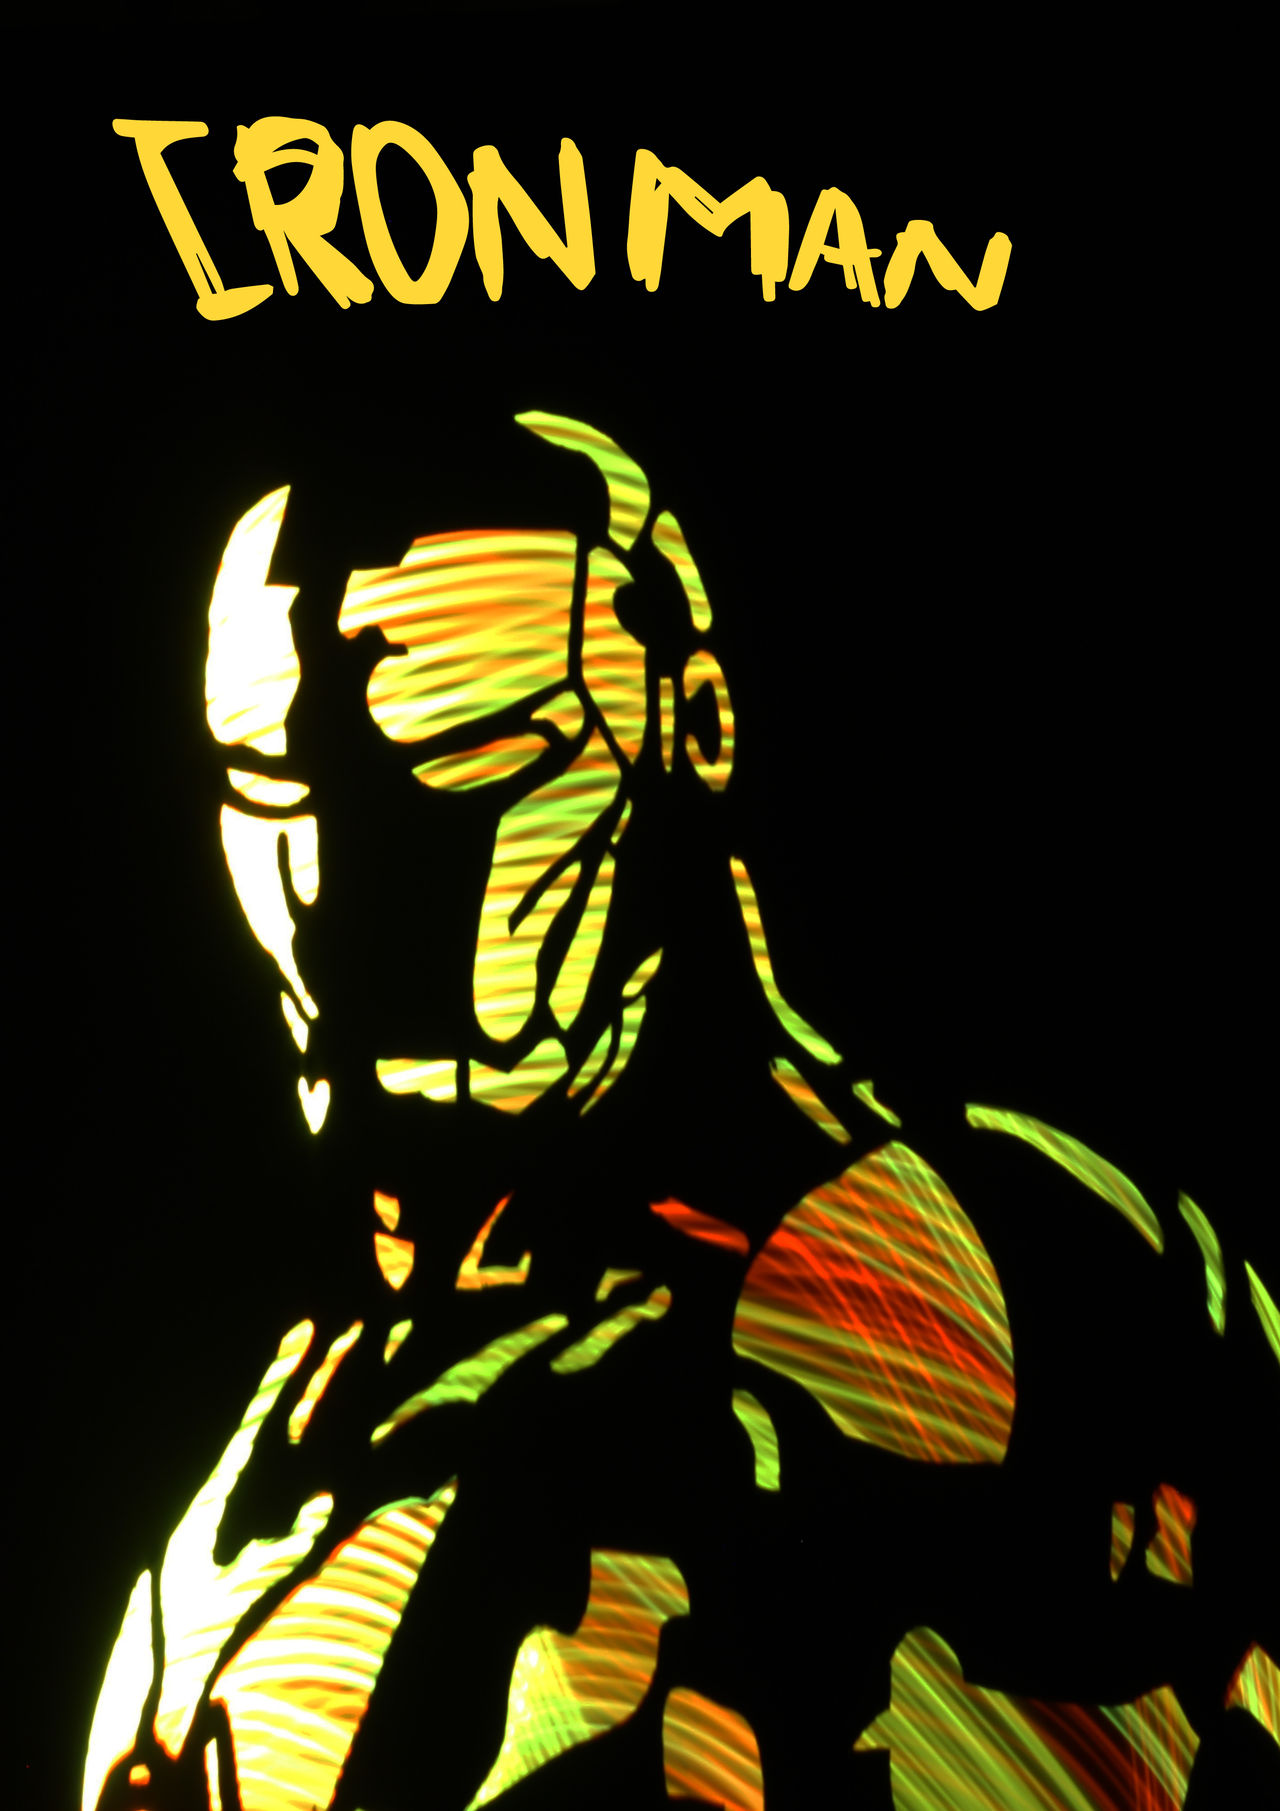 Light Ironman Filtre Colors Stencil Stencil Art Colors Lightpaintingphotography Light Painting